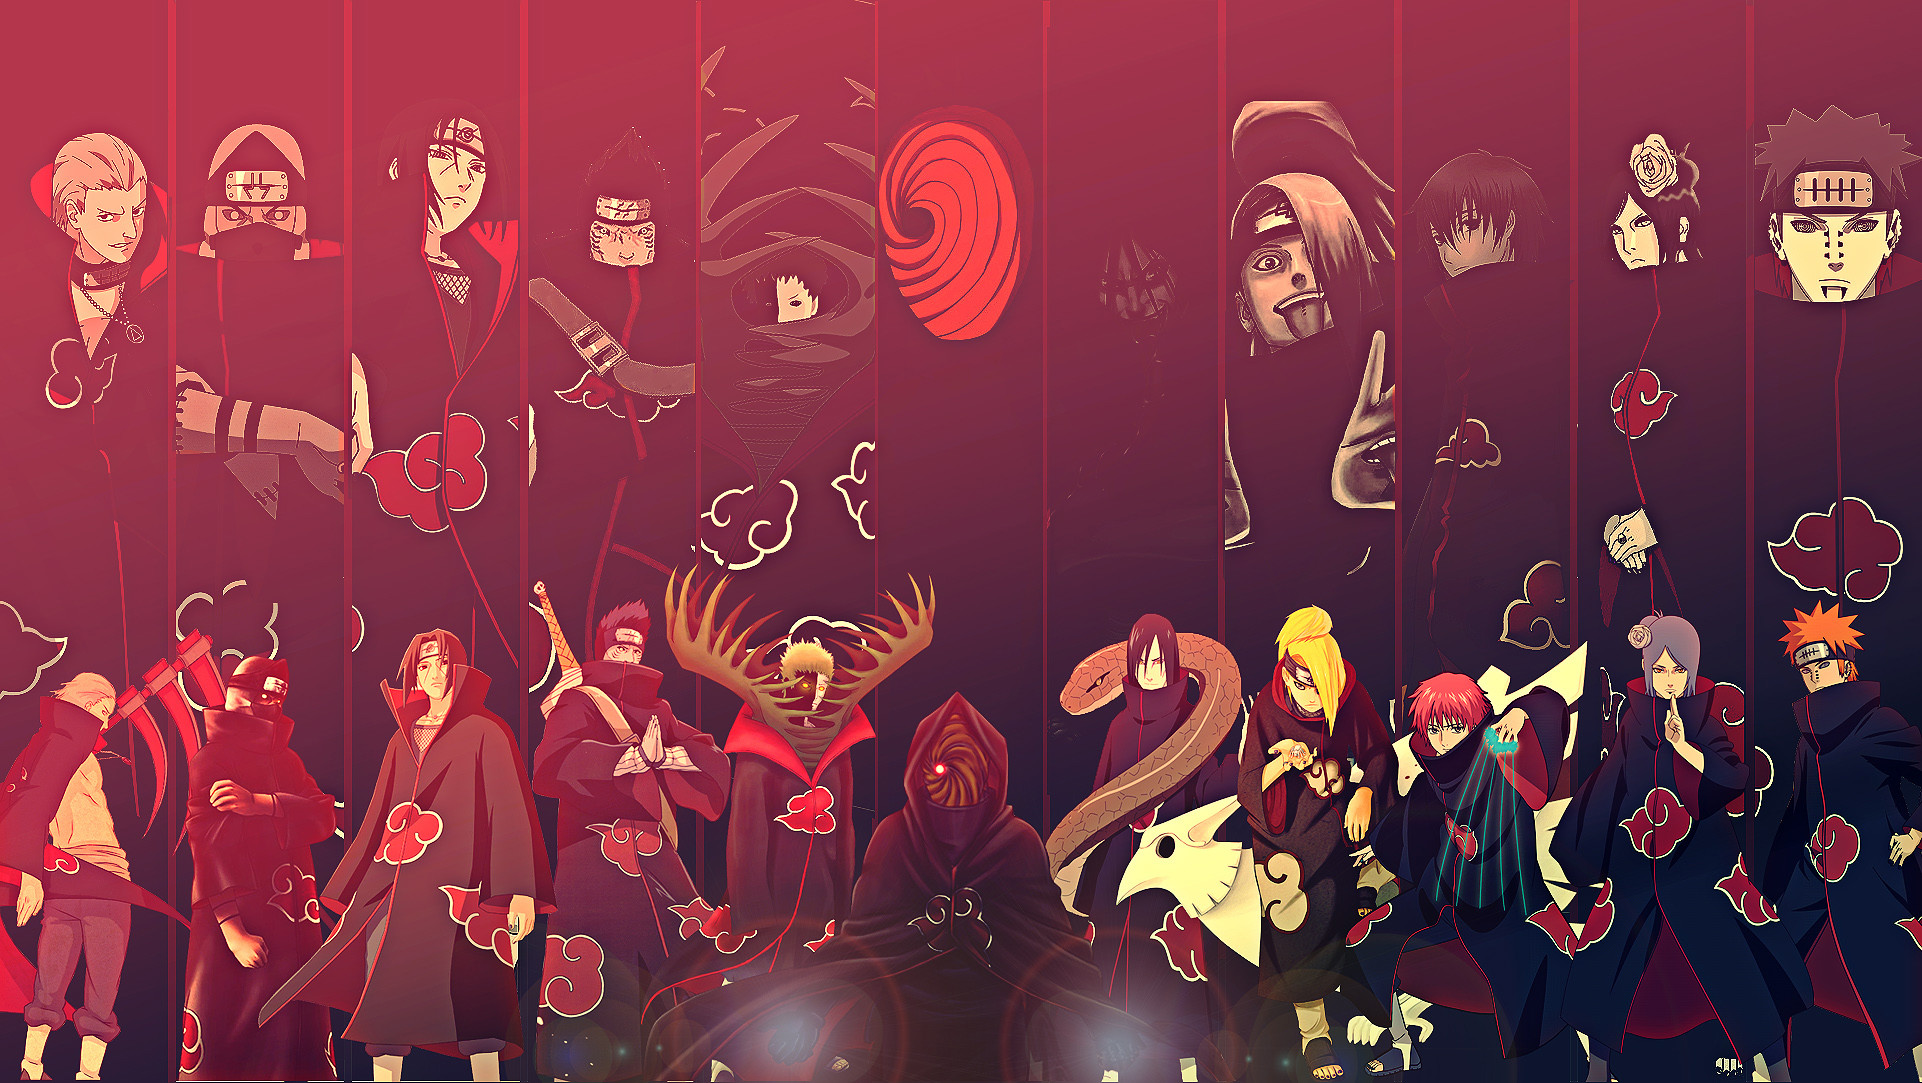 1922x1083 View, download, comment, and rate this  Akatsuki Members Wallpaper  - Wallpaper Abyss